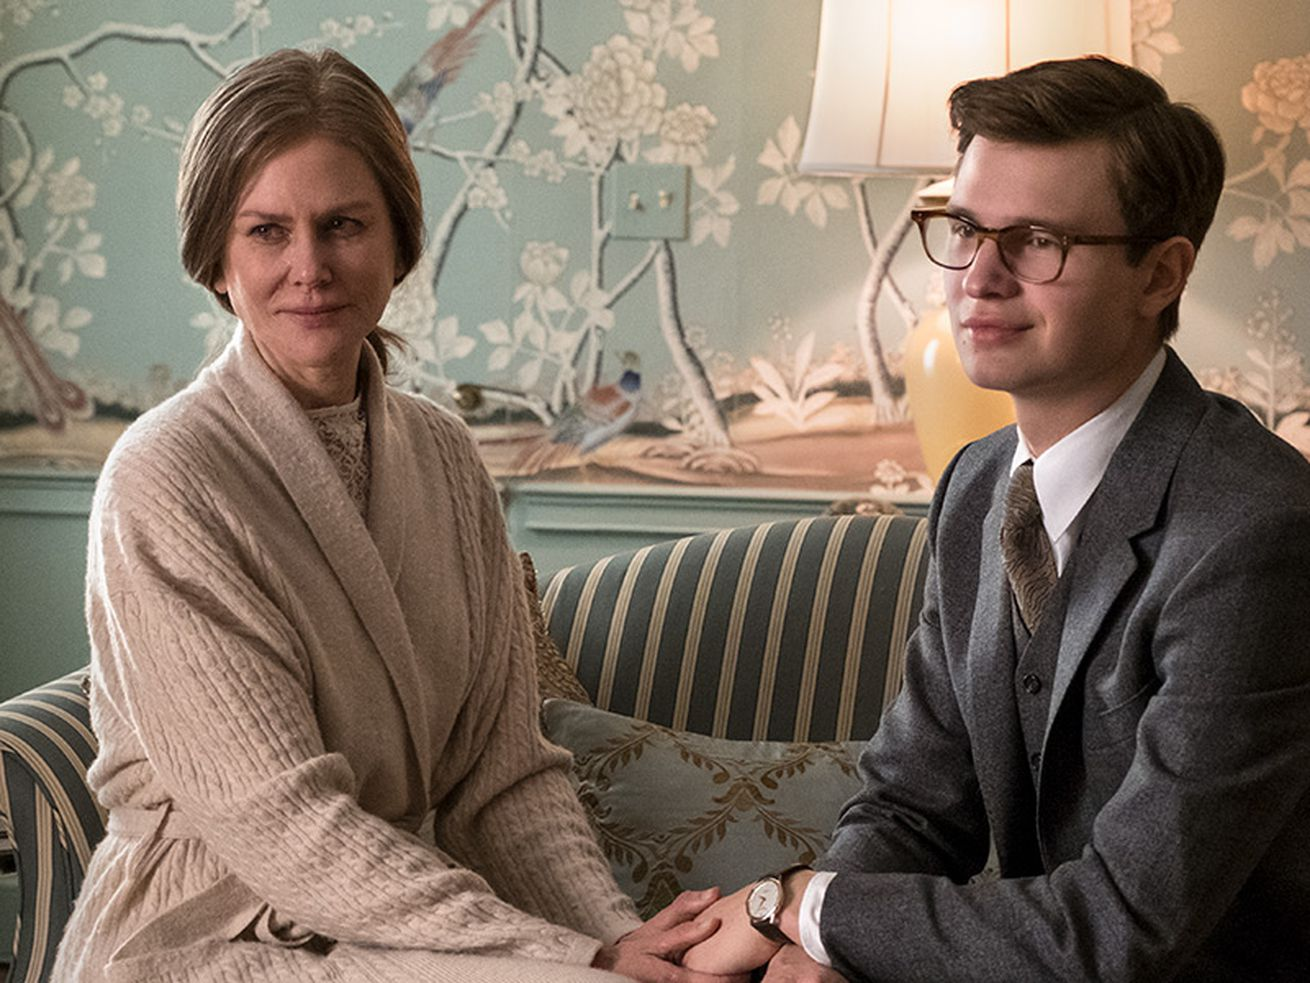 """Nicole Kidman and Ansel Elgort sit together on a sofa in the movie """"The Goldfinch."""""""